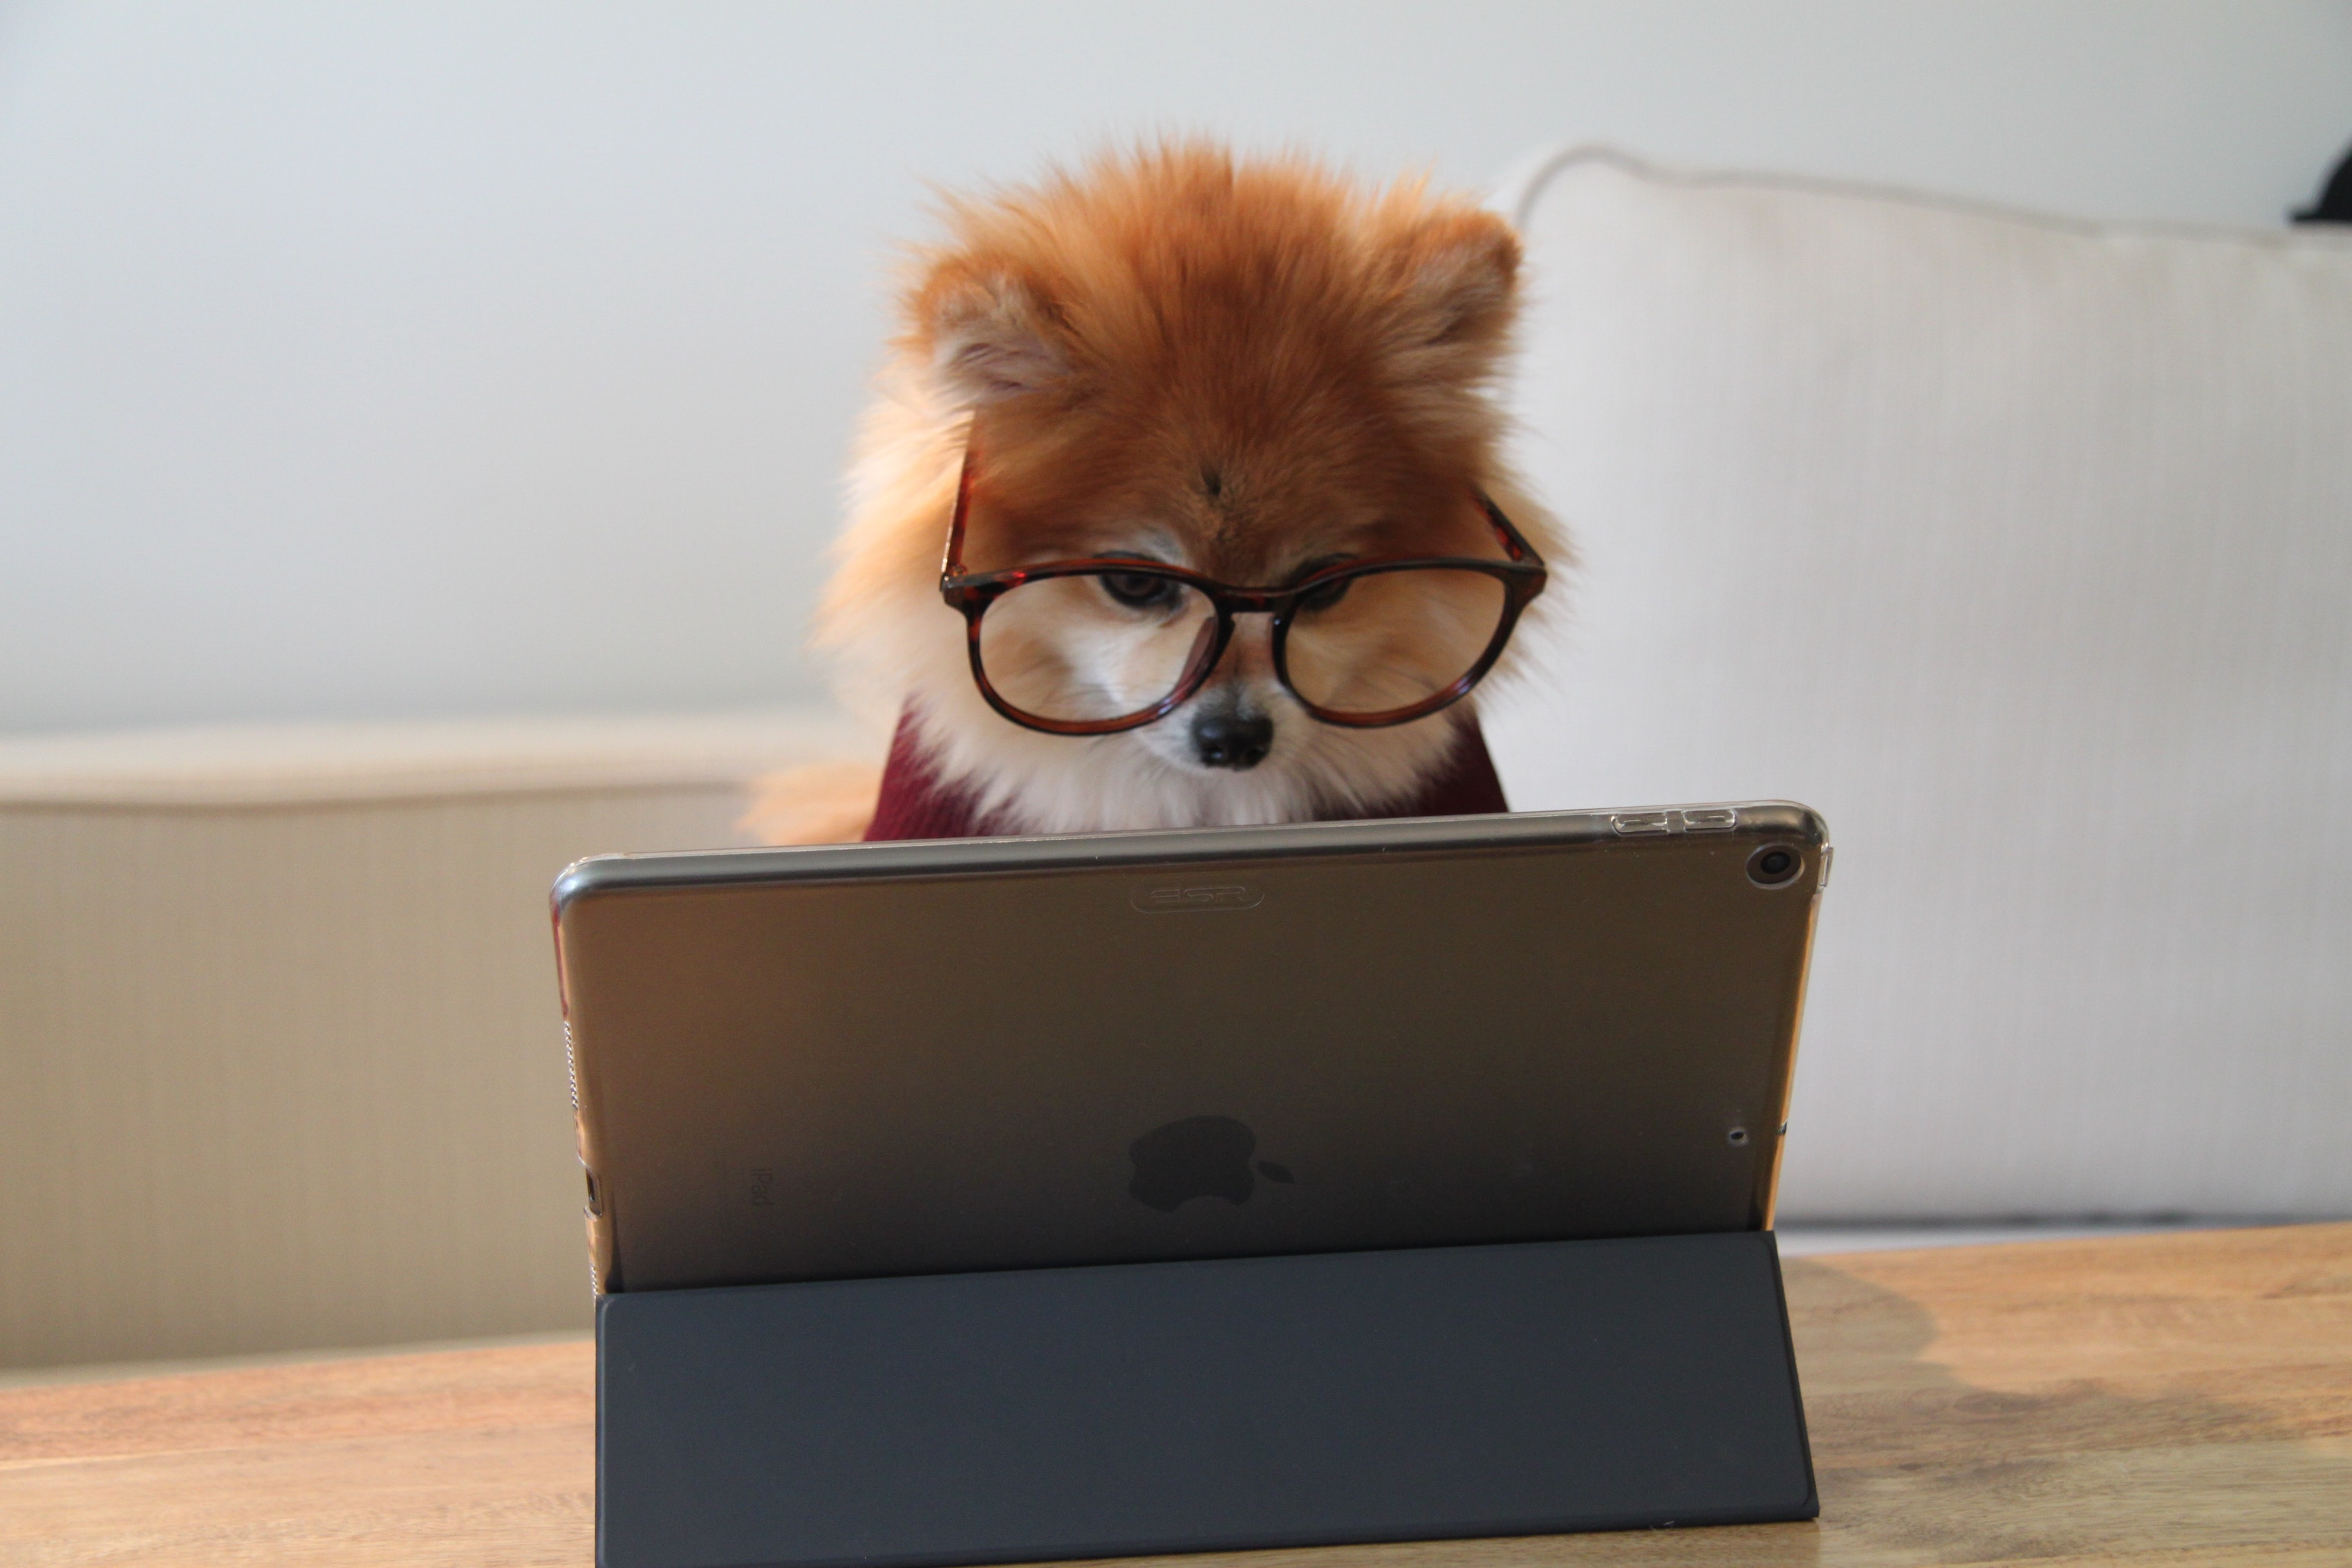 Dog waiting for website to load